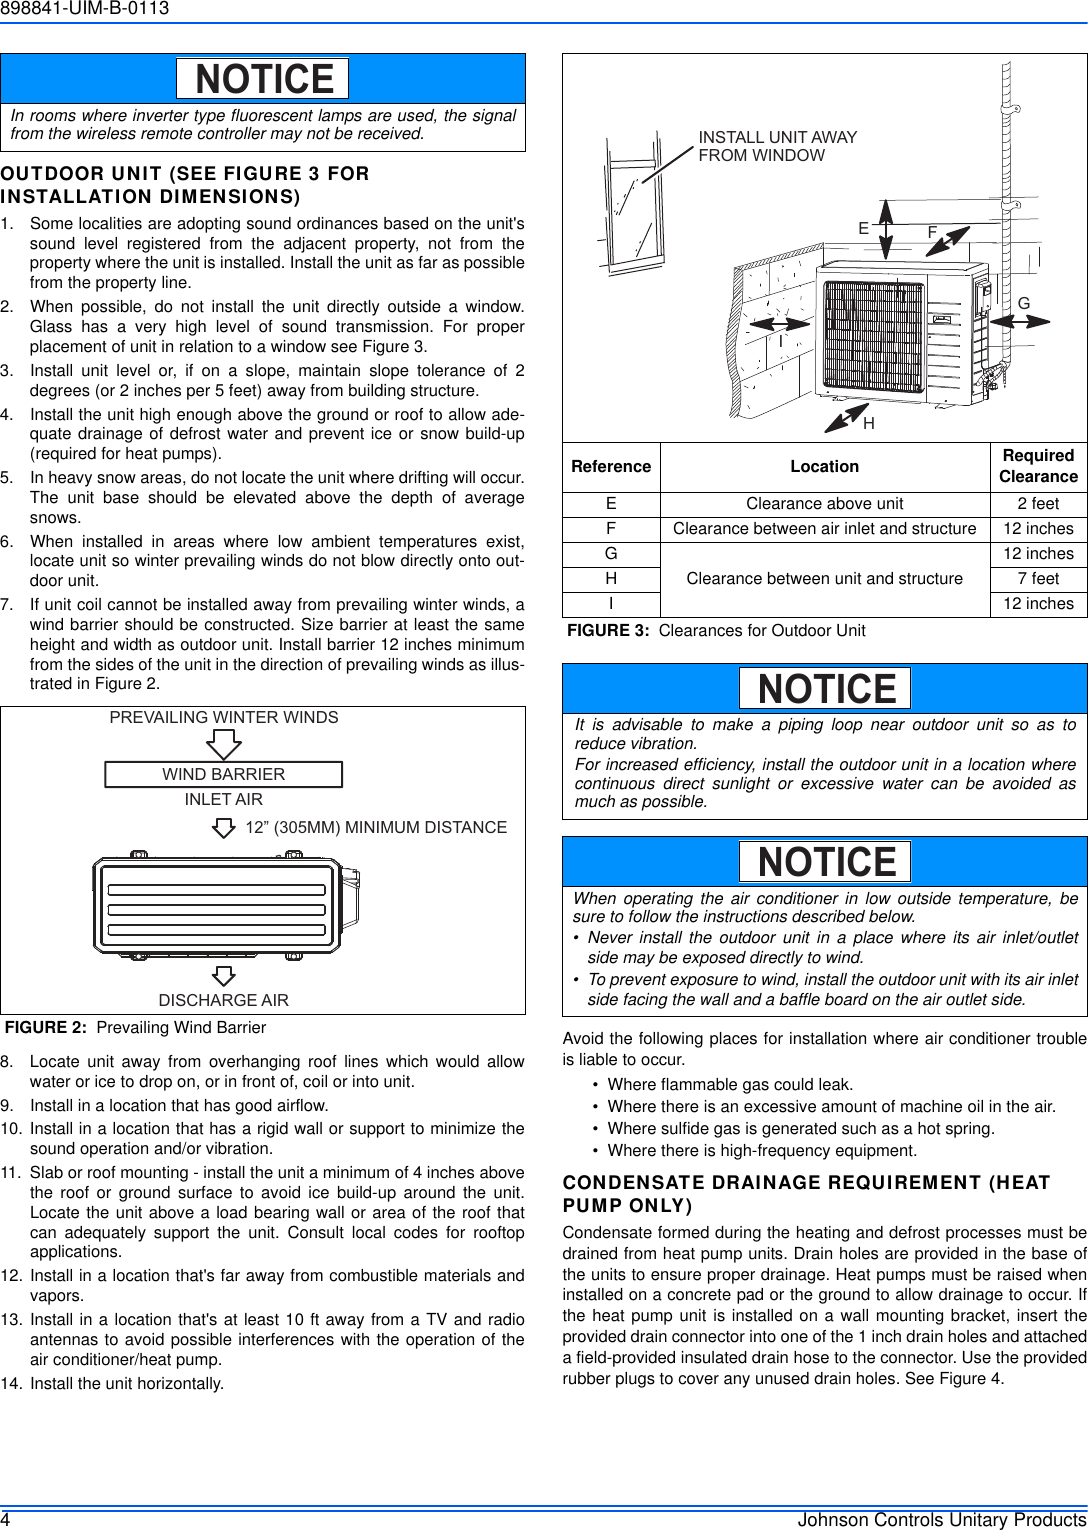 Johnson Controls Inc Air Conditioner 22 Seer Users Manual